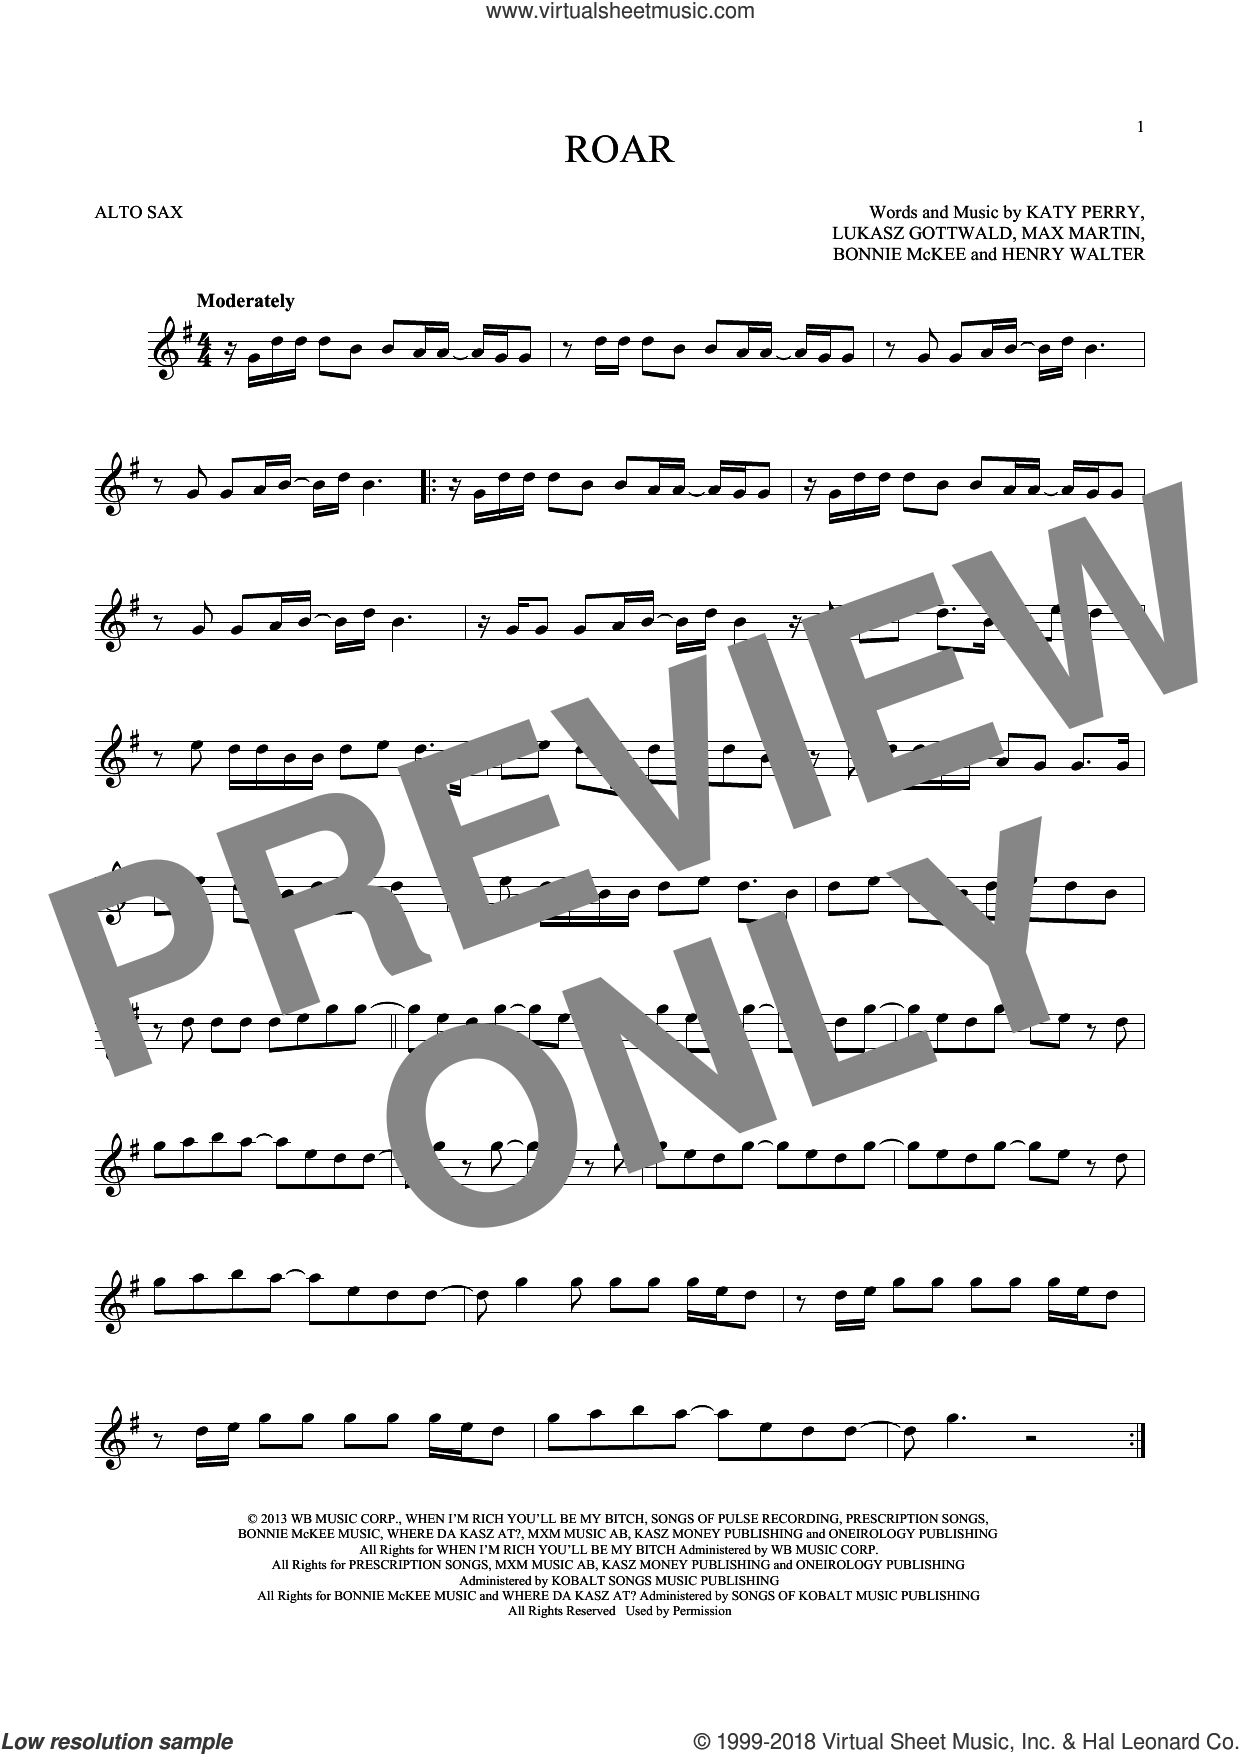 Roar sheet music for alto saxophone solo ( Sax) by Katy Perry, Bonnie McKee, Henry Walter, Lukasz Gottwald and Max Martin, intermediate alto saxophone ( Sax). Score Image Preview.